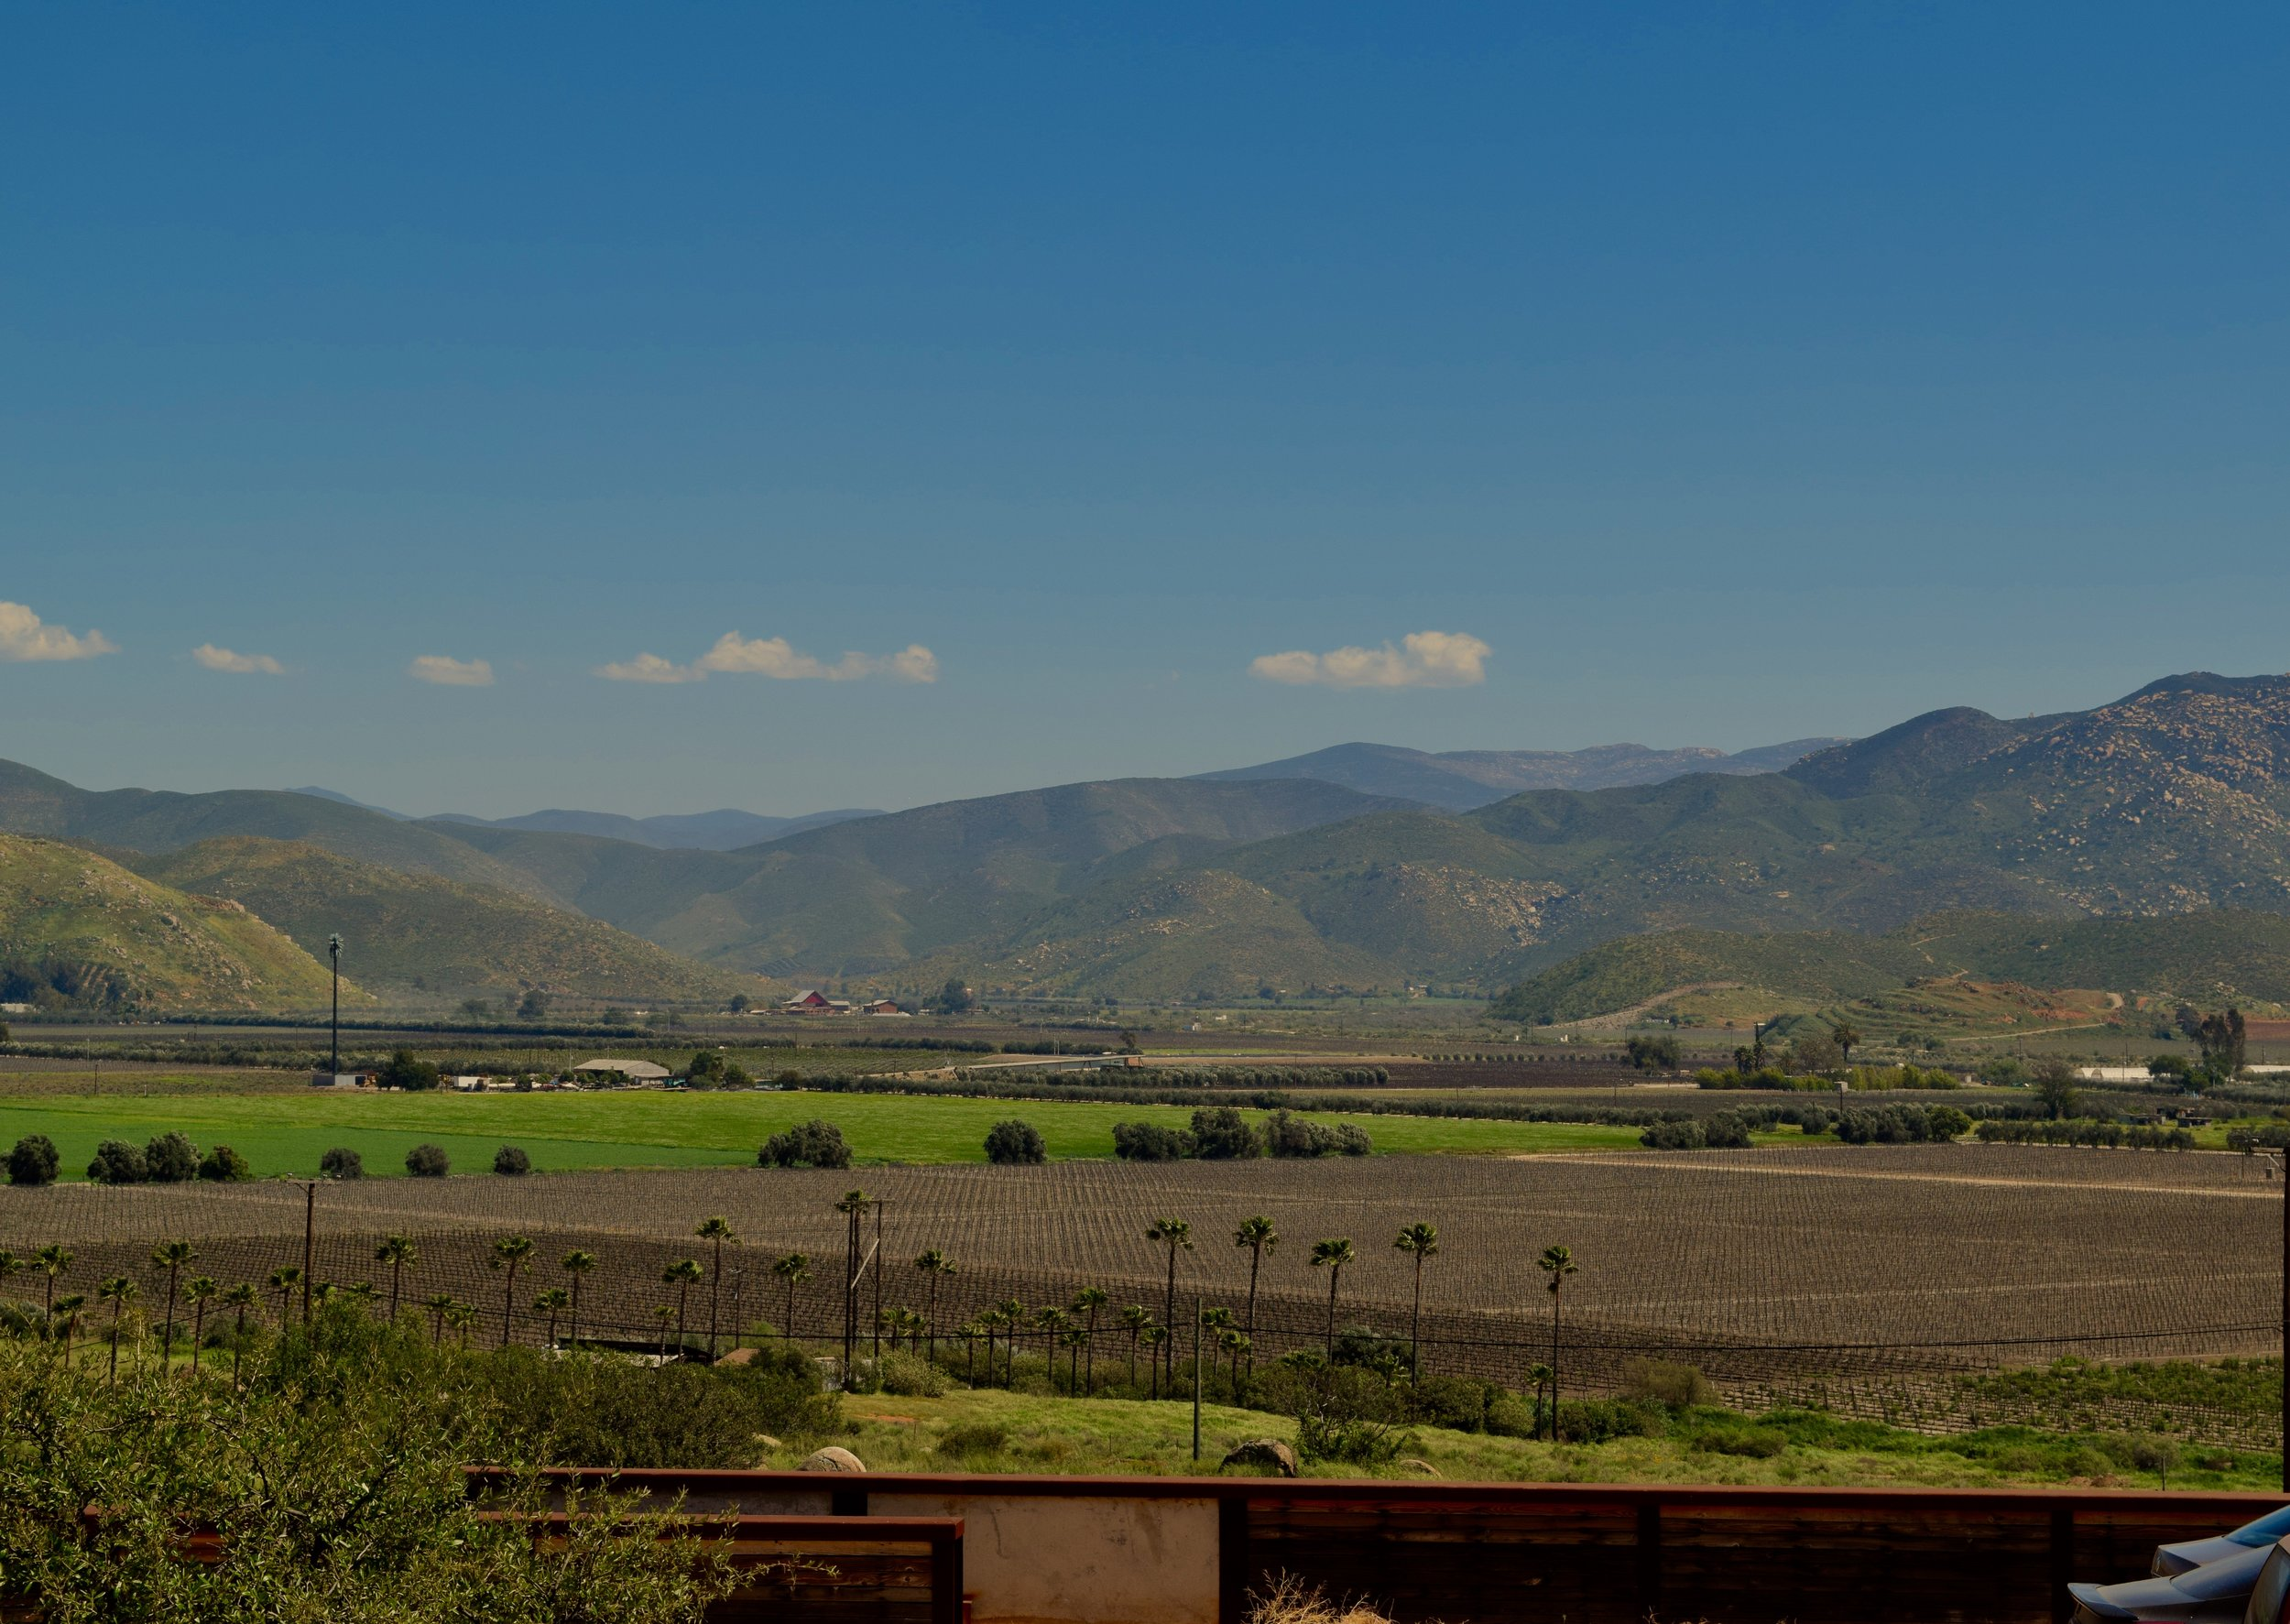 View from Encuentro Guadalupe. Photo by Gabriel Manzo.